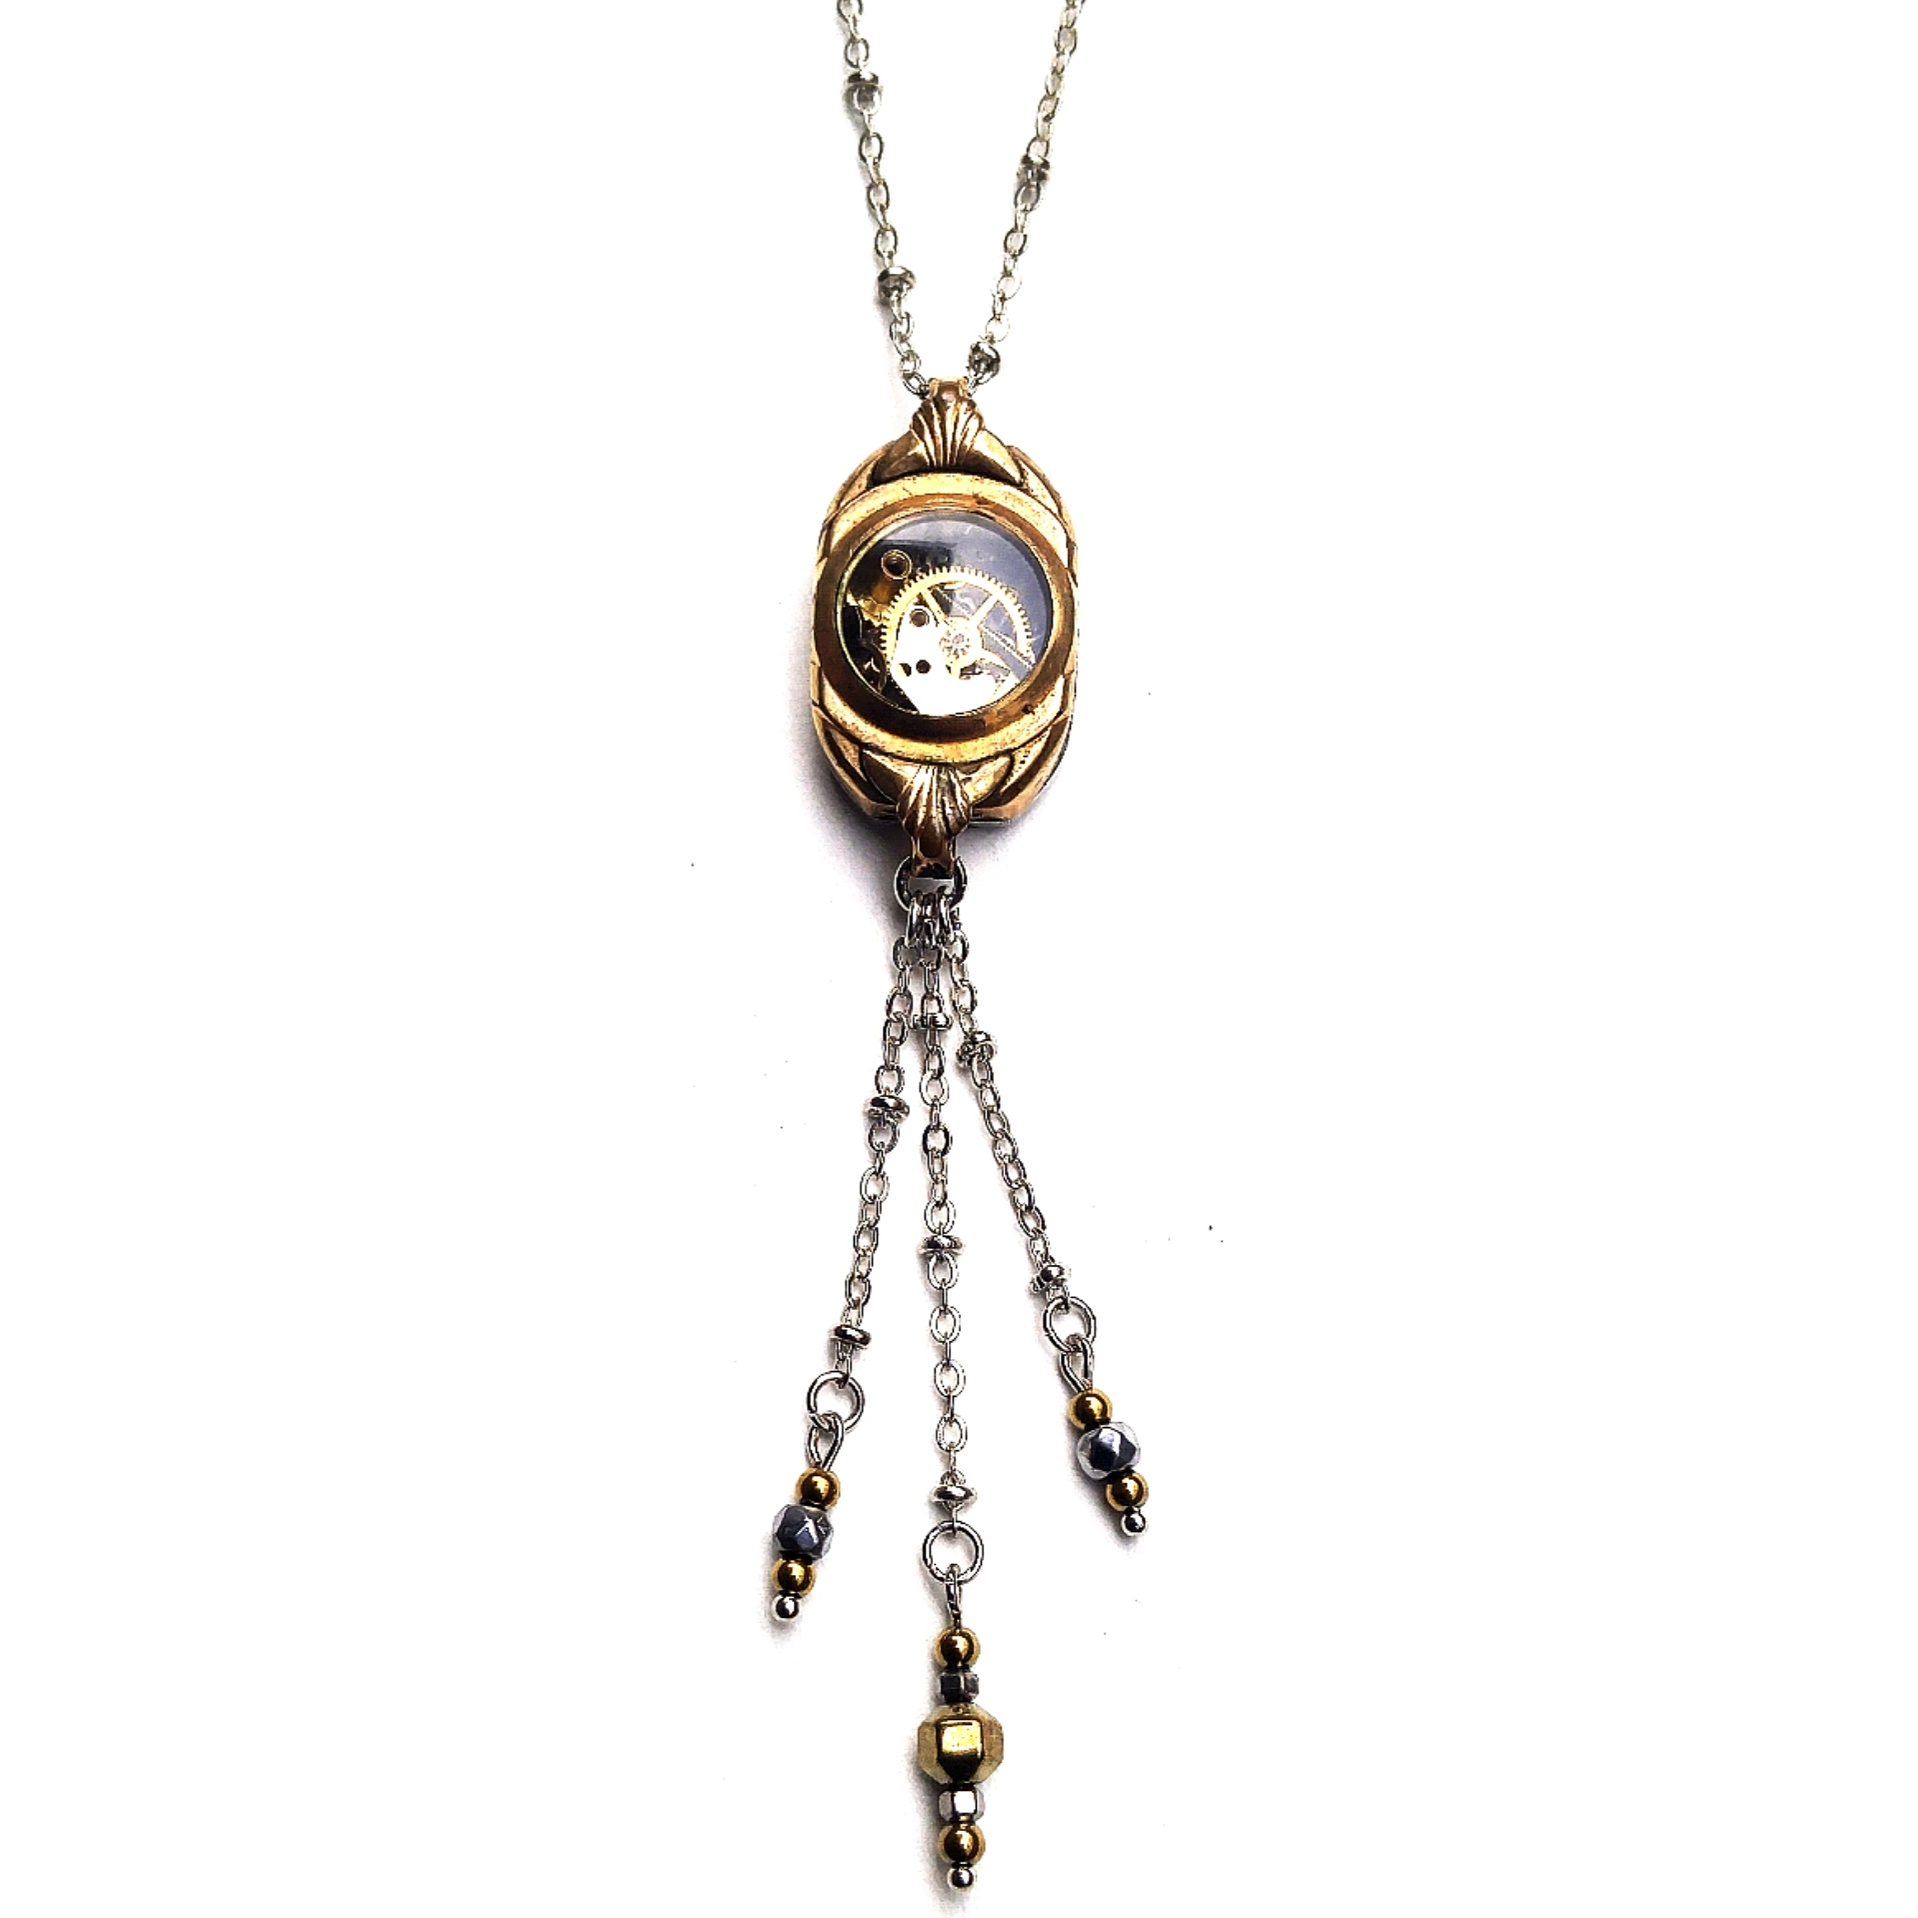 watch case with floating watch parts and beaded Hematite details.